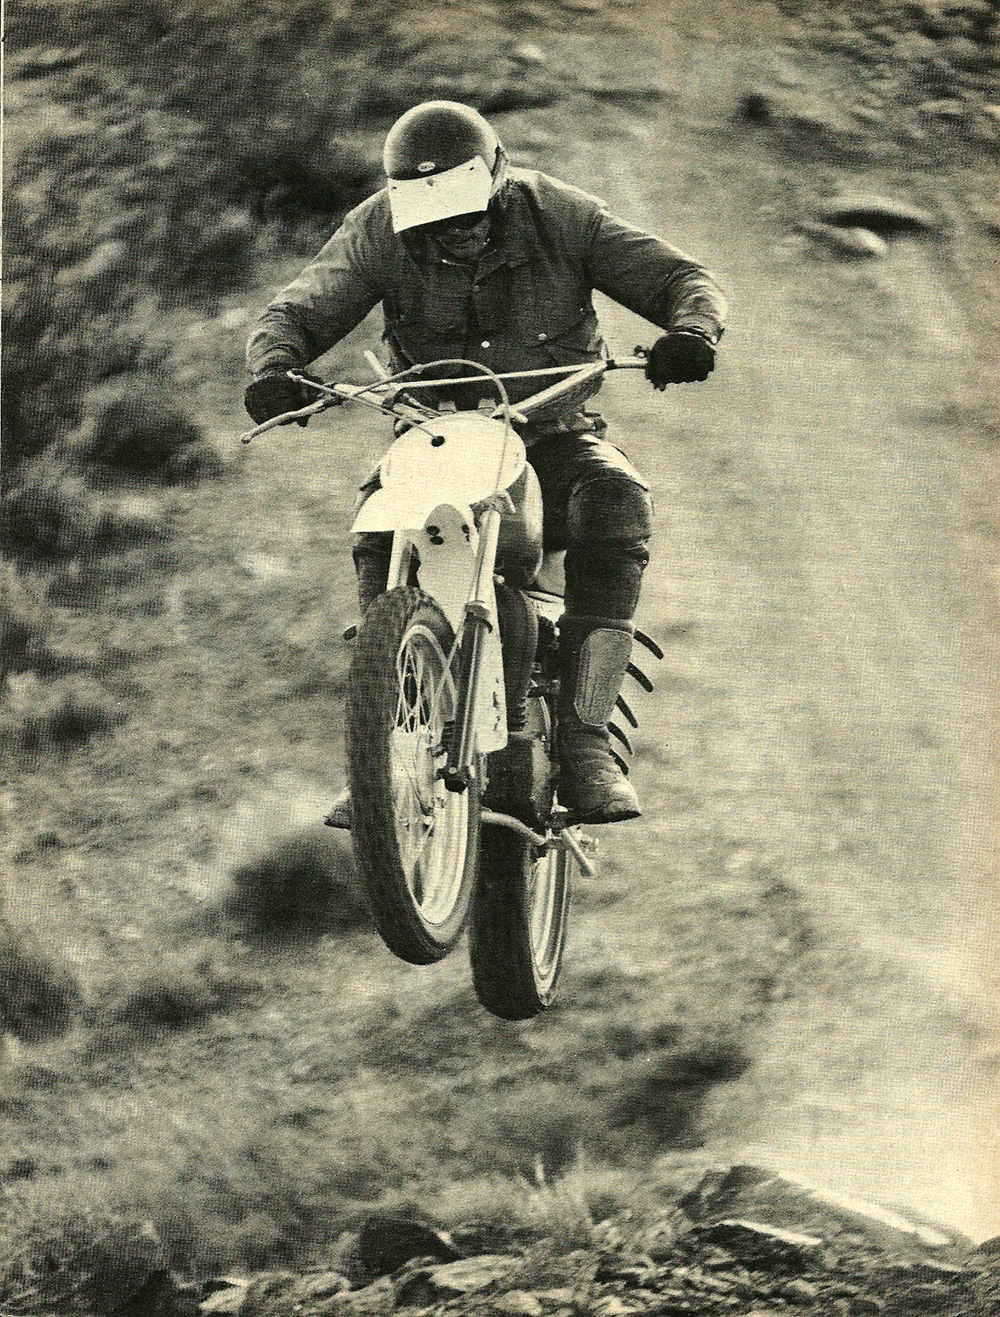 1977 Husqvarna Automatic 360 road test 2.jpg